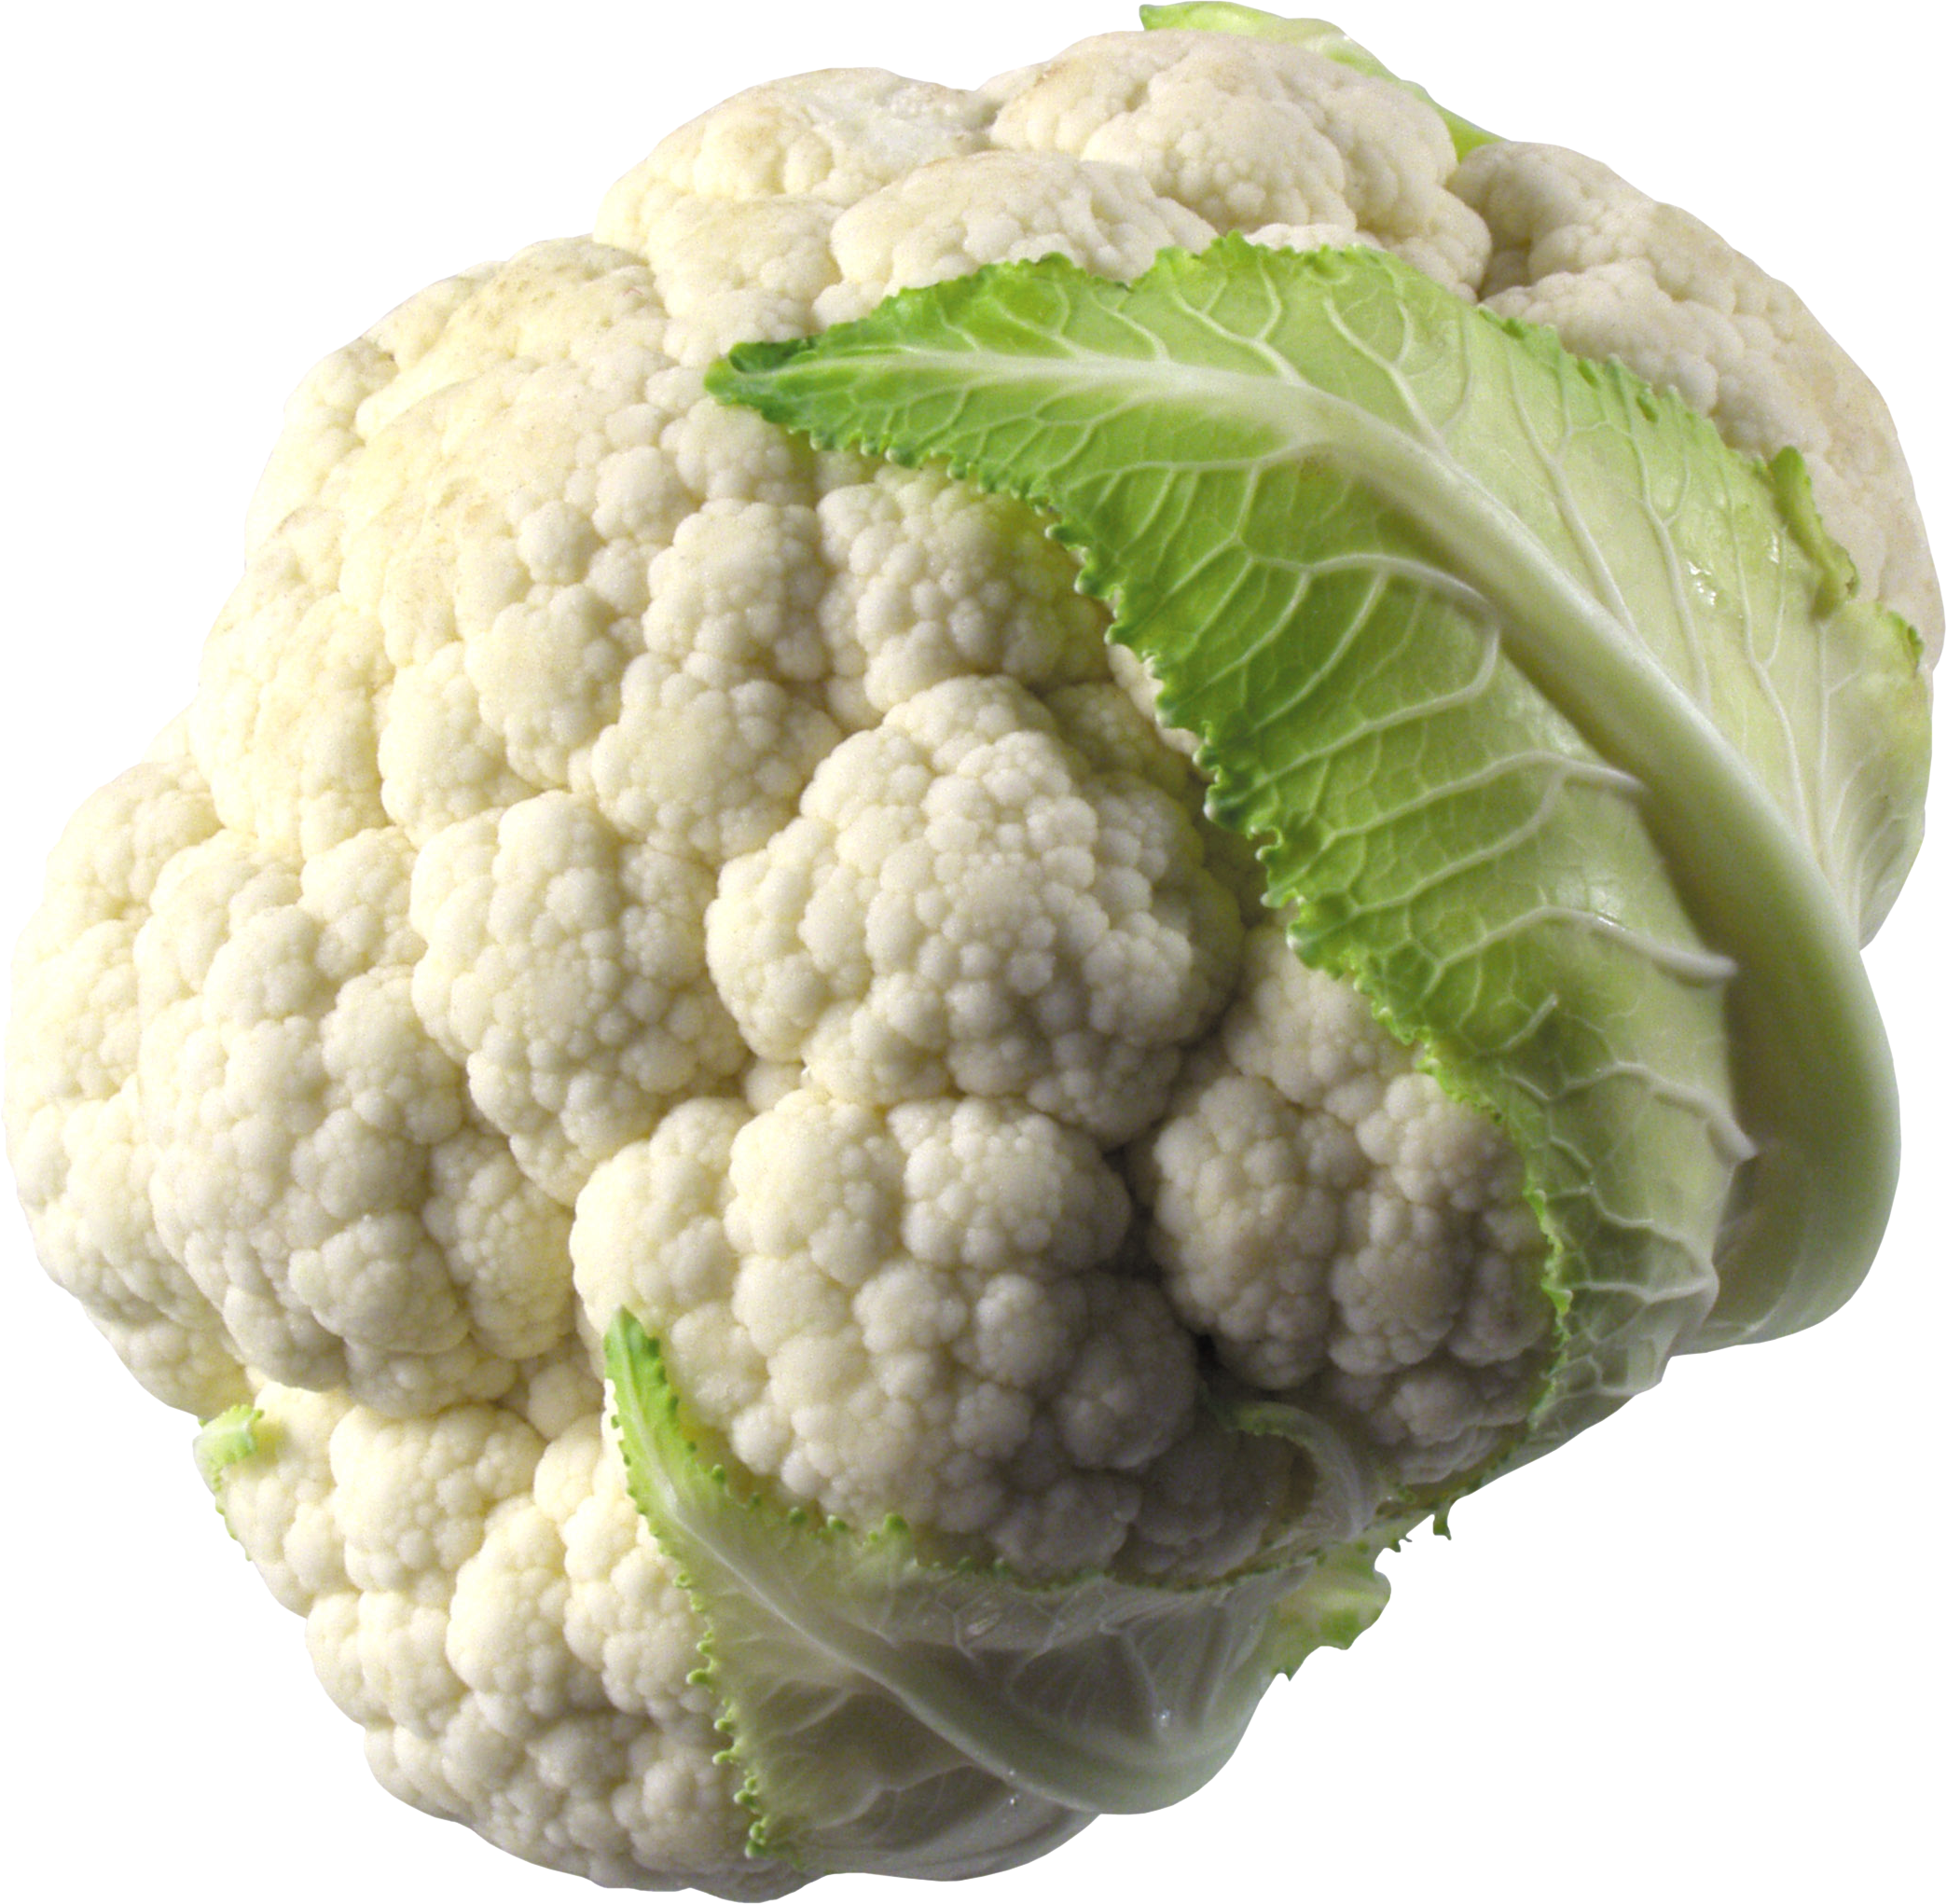 Cauliflower PNG images free download.